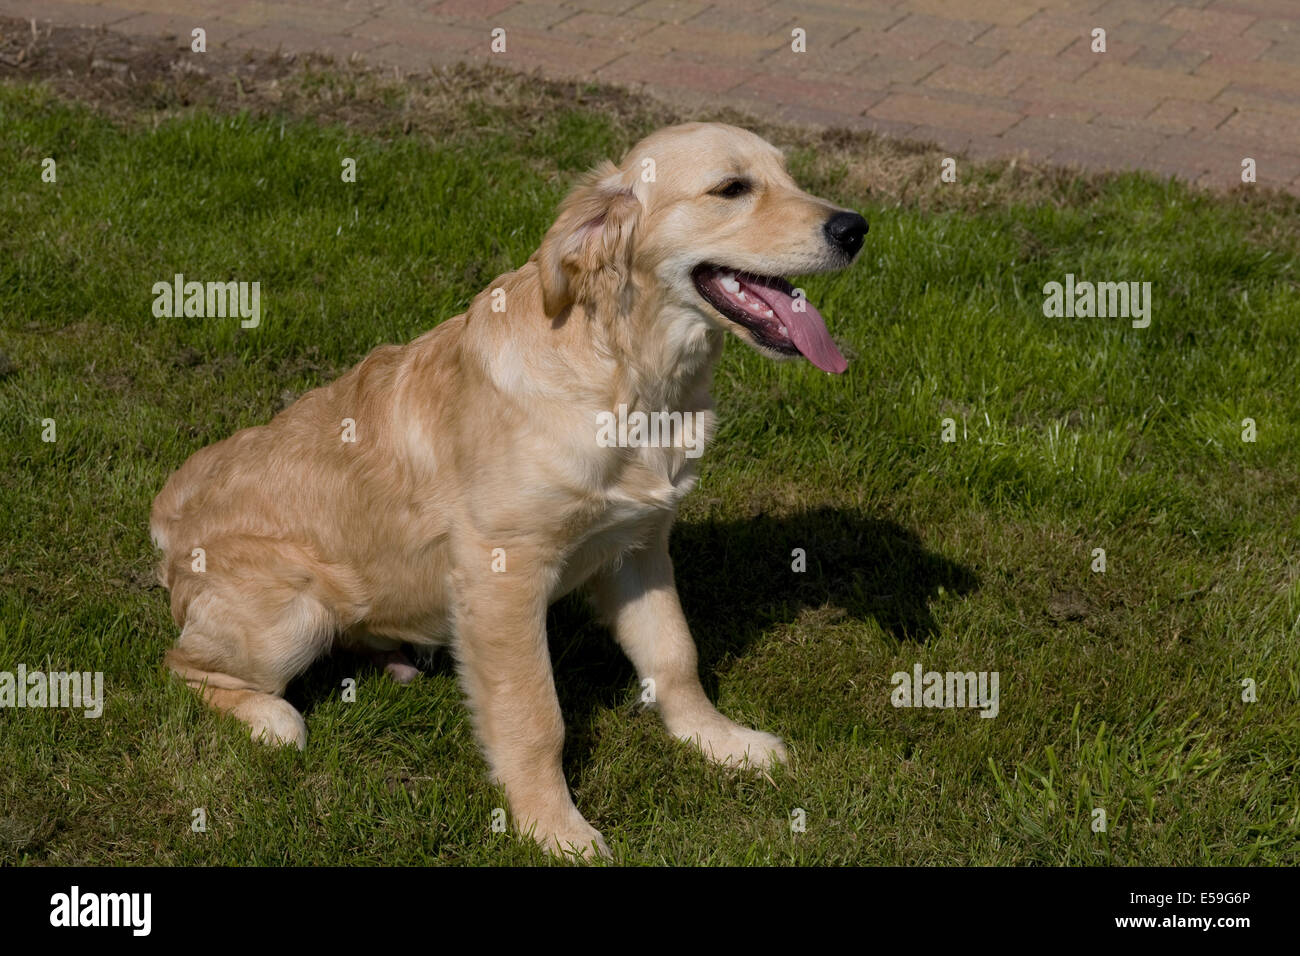 Marsden a 5 month old golden retriever puppy sits on the grass in the front garden of his breeder - Stock Image